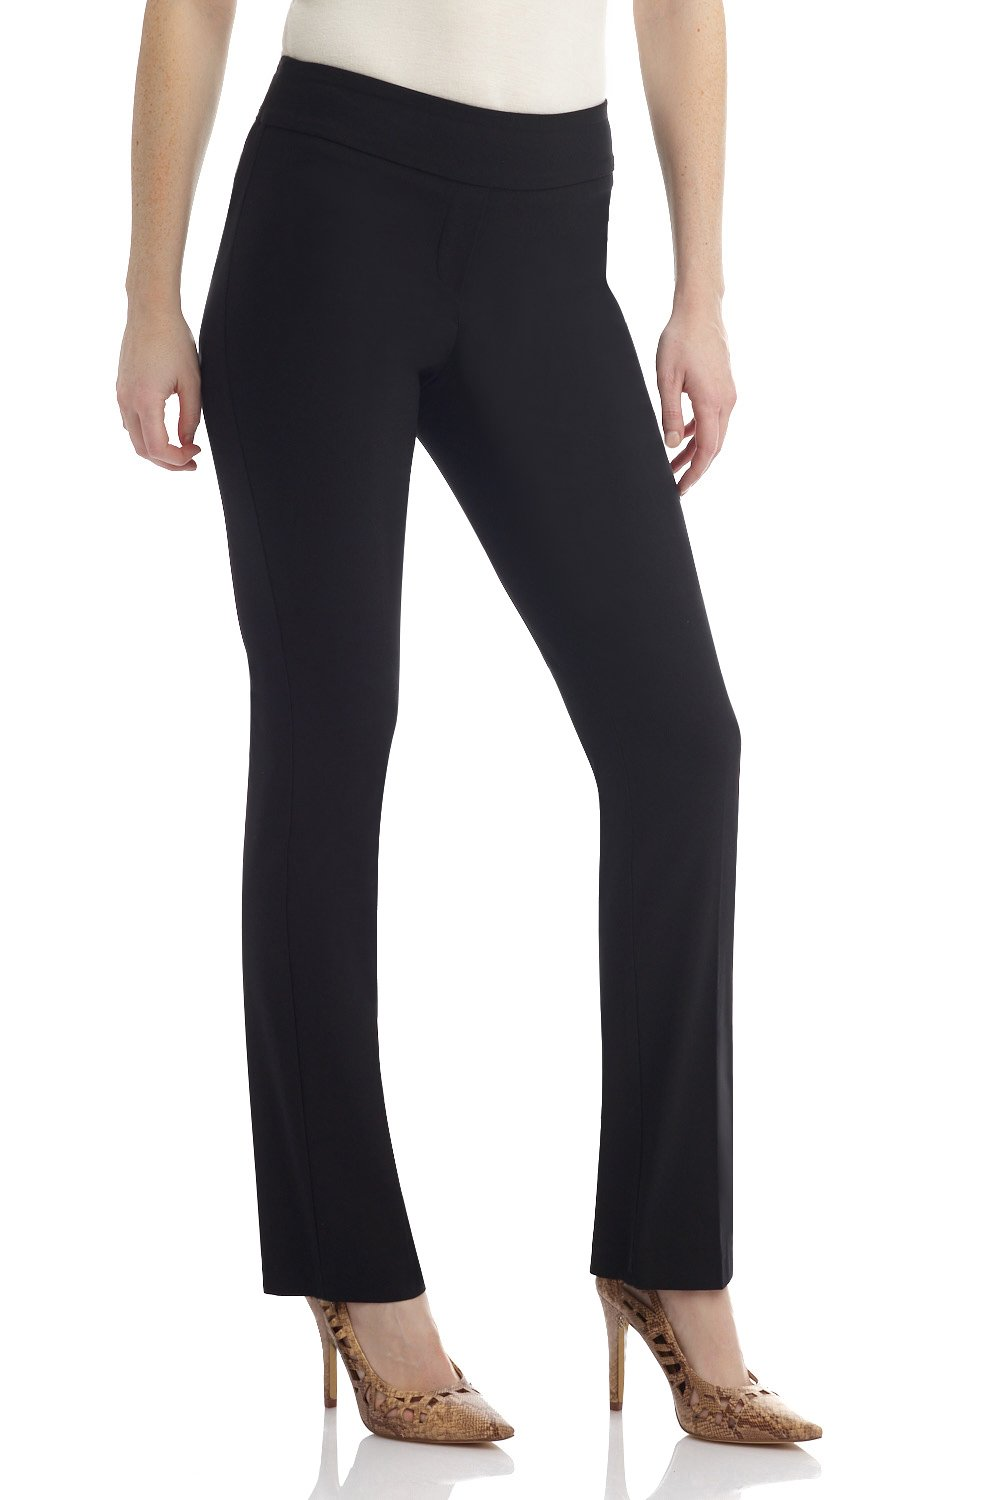 Rekucci Women's Ease in to Comfort Straight Leg Pant with Tummy Control (16,Black)